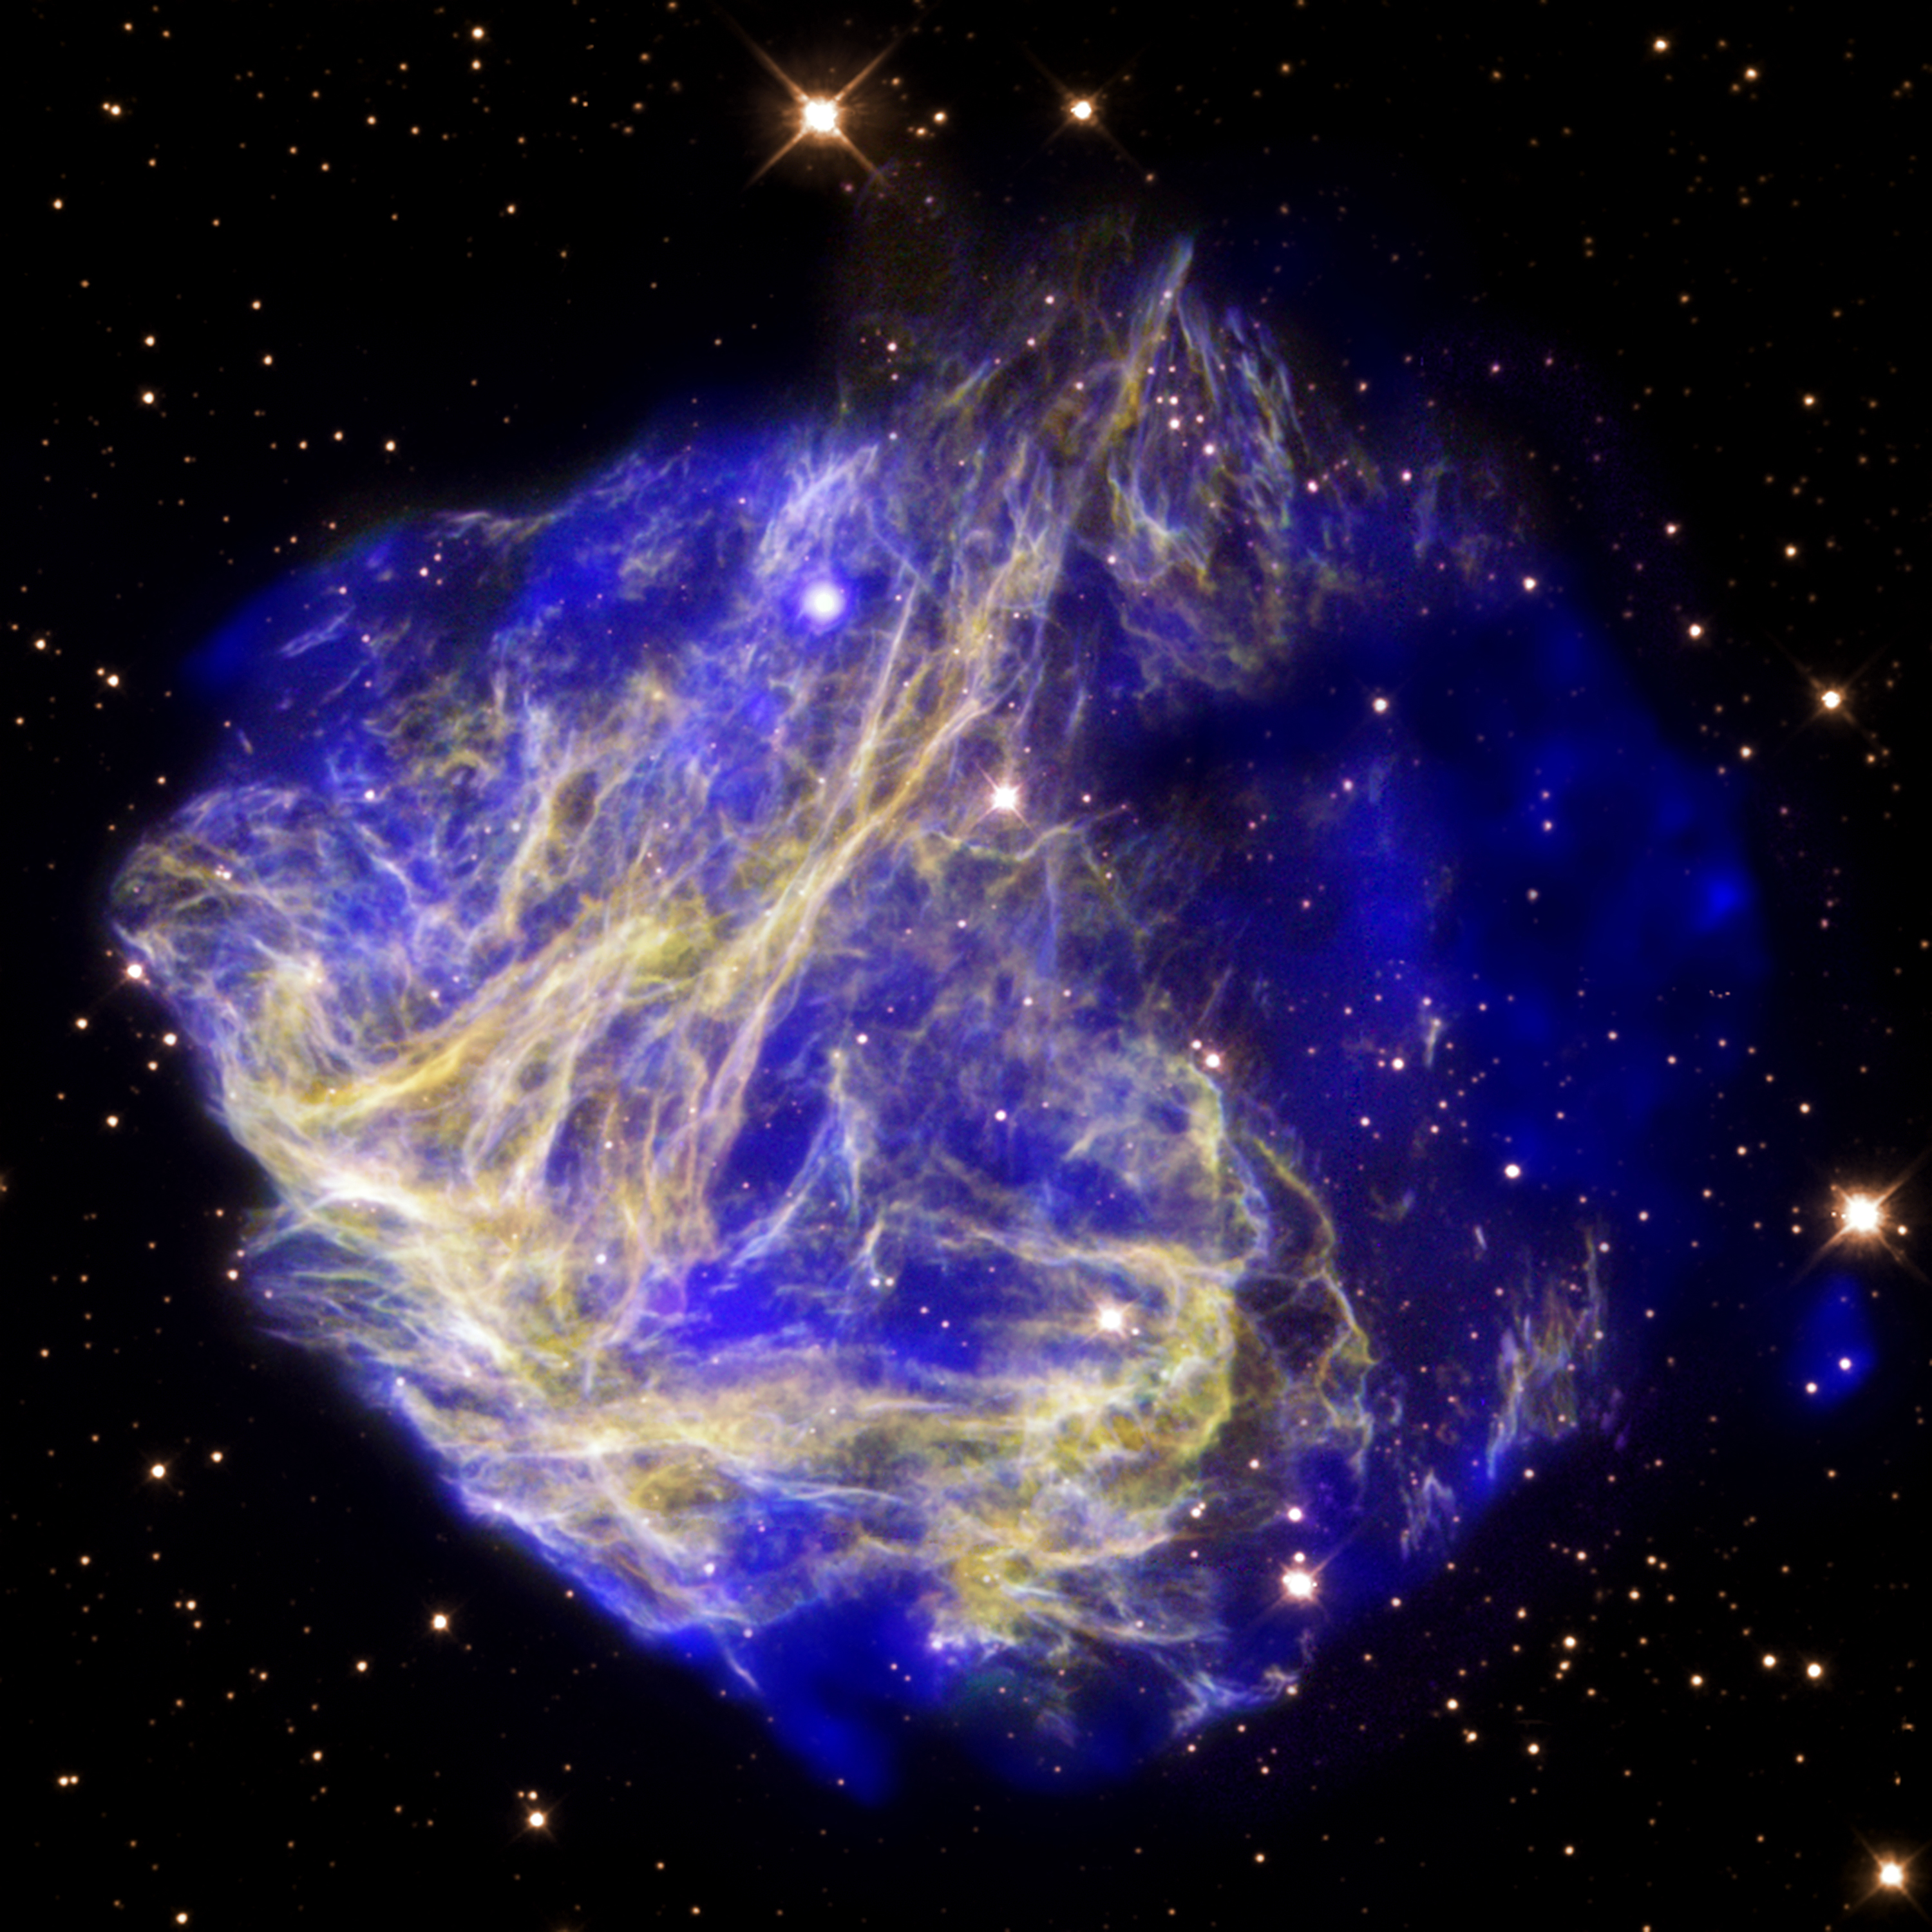 'This composite image of data from Chandra (blue) and Hubble (yellow and purple) depicts the scene of a supernova explosion's aftermath.  The X-ray data reveal a bullet-like structure to the lower right that appears to have been blown out of the remnant.   The detection of the bullet, which is traveling at some 5 million miles per hour, is evidence that the explosion that created the remnant wa...